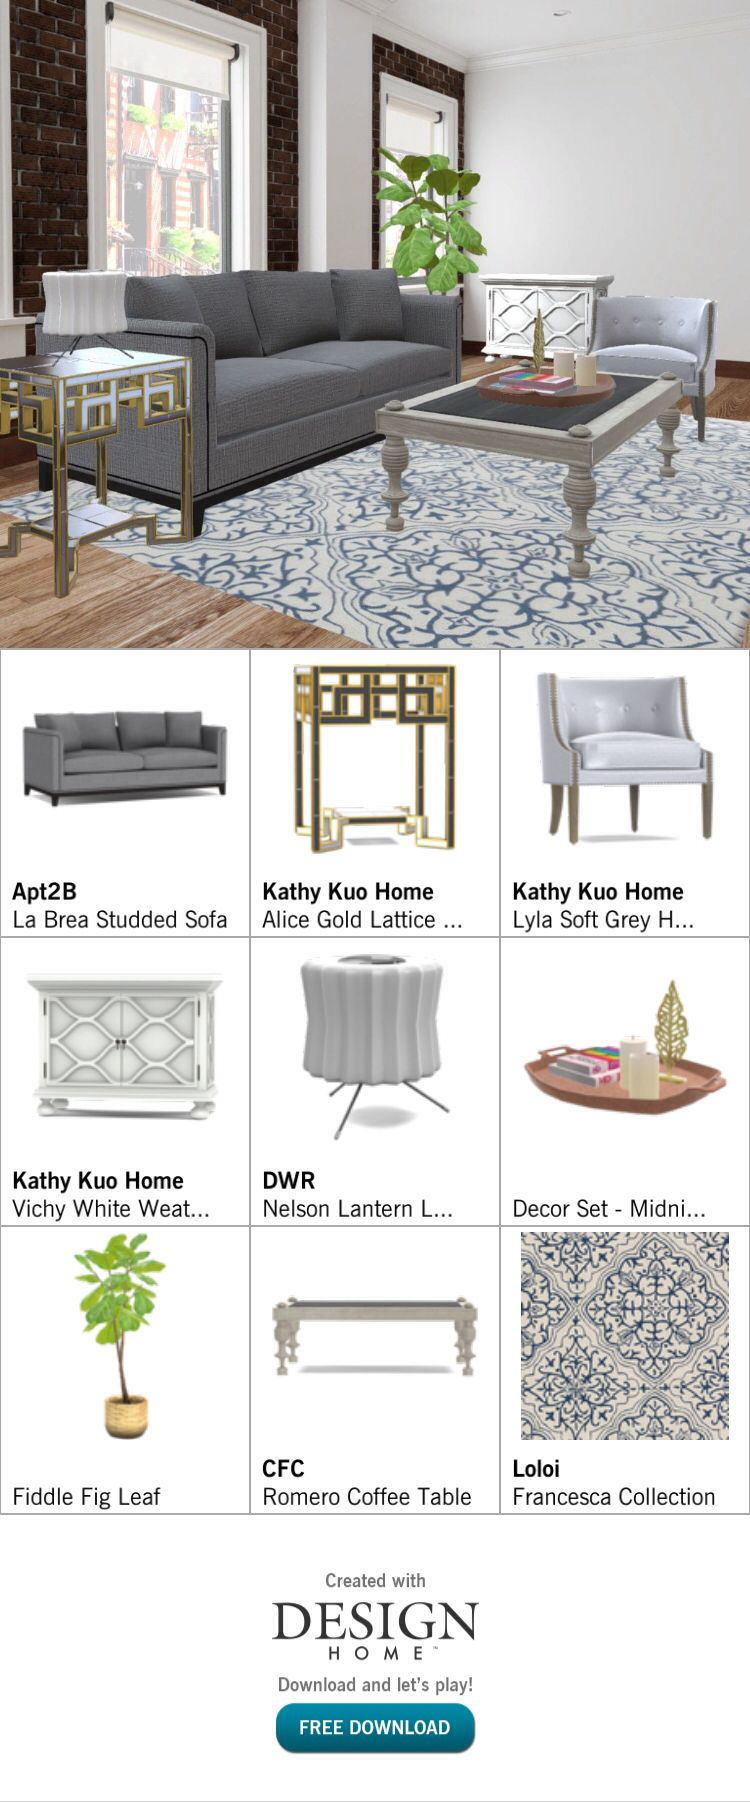 Created with design home living room interior house furniture also game creations rh nz pinterest